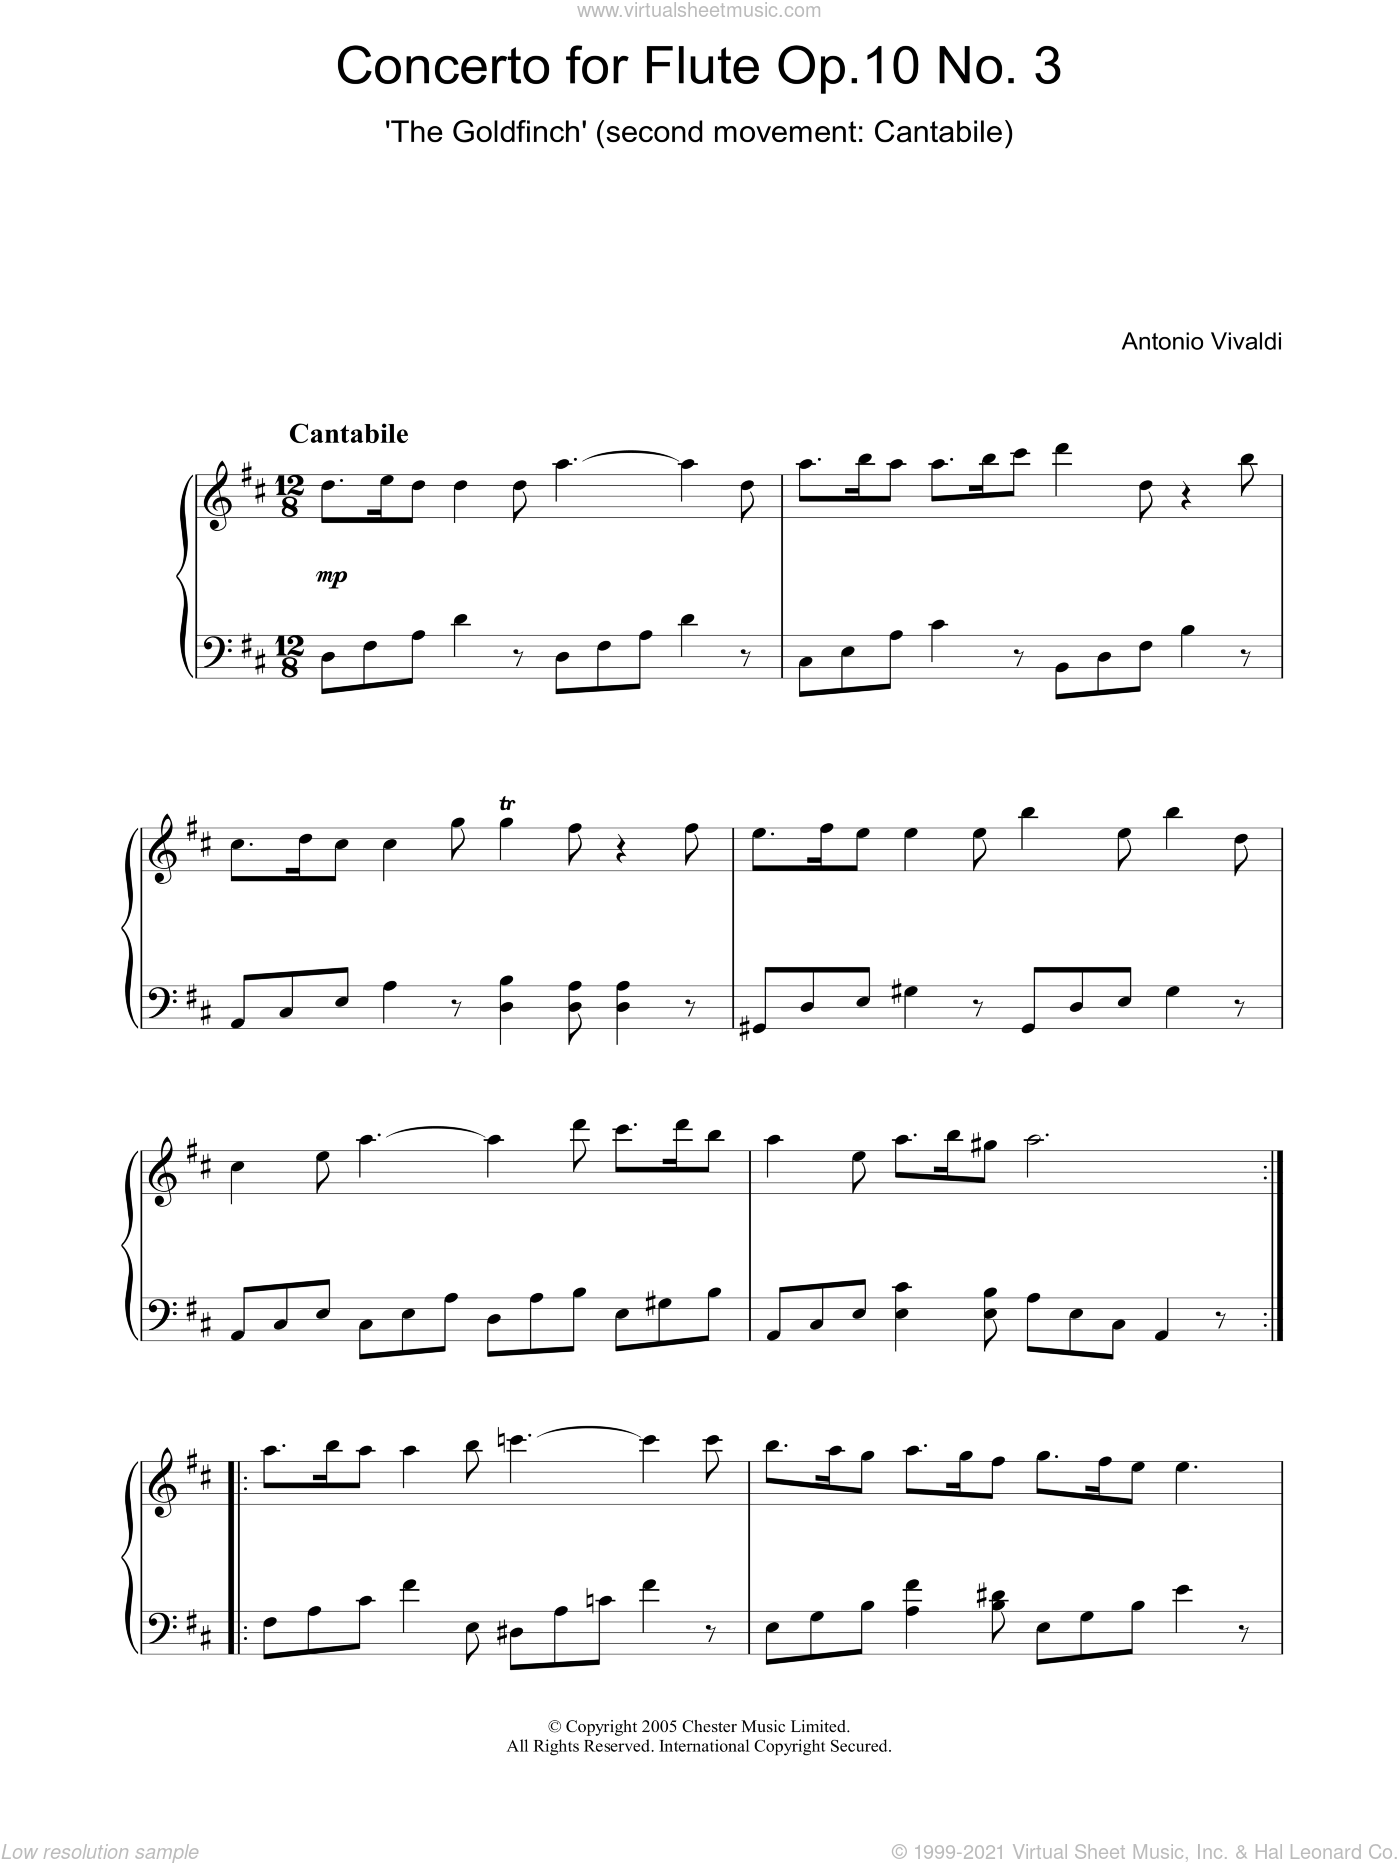 Concerto for Flute Op.10, No.3 'The Goldfinch' (2nd Movement: Cantabile) sheet music for piano solo by Antonio Vivaldi. Score Image Preview.